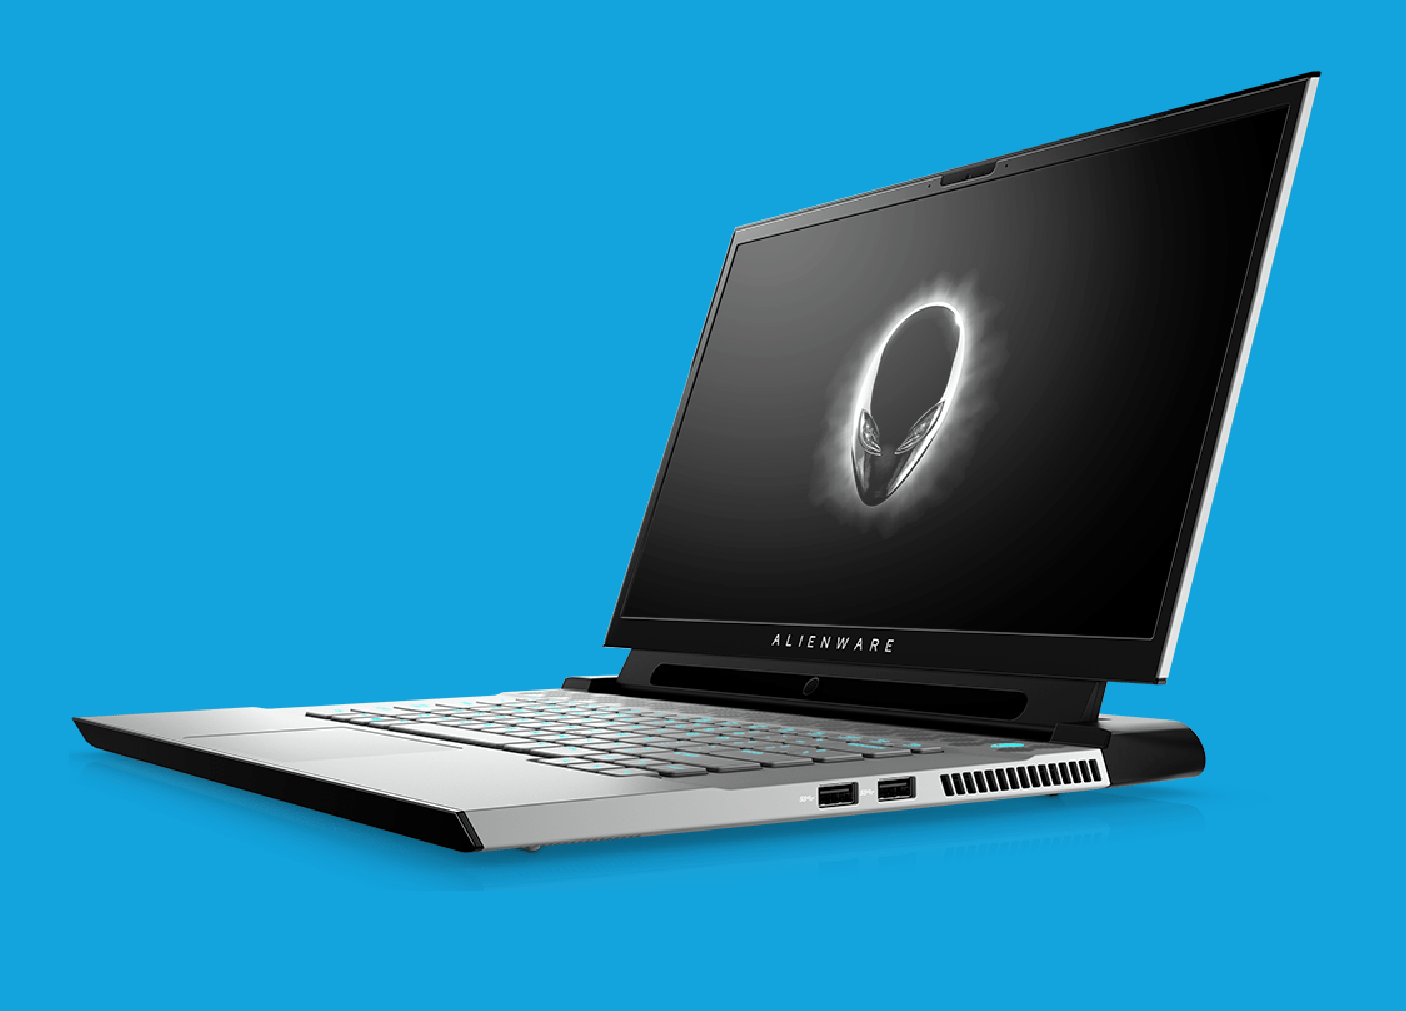 New Dell Alienware m15 (R2) Gaming Laptop Hands-on - Your Info Master